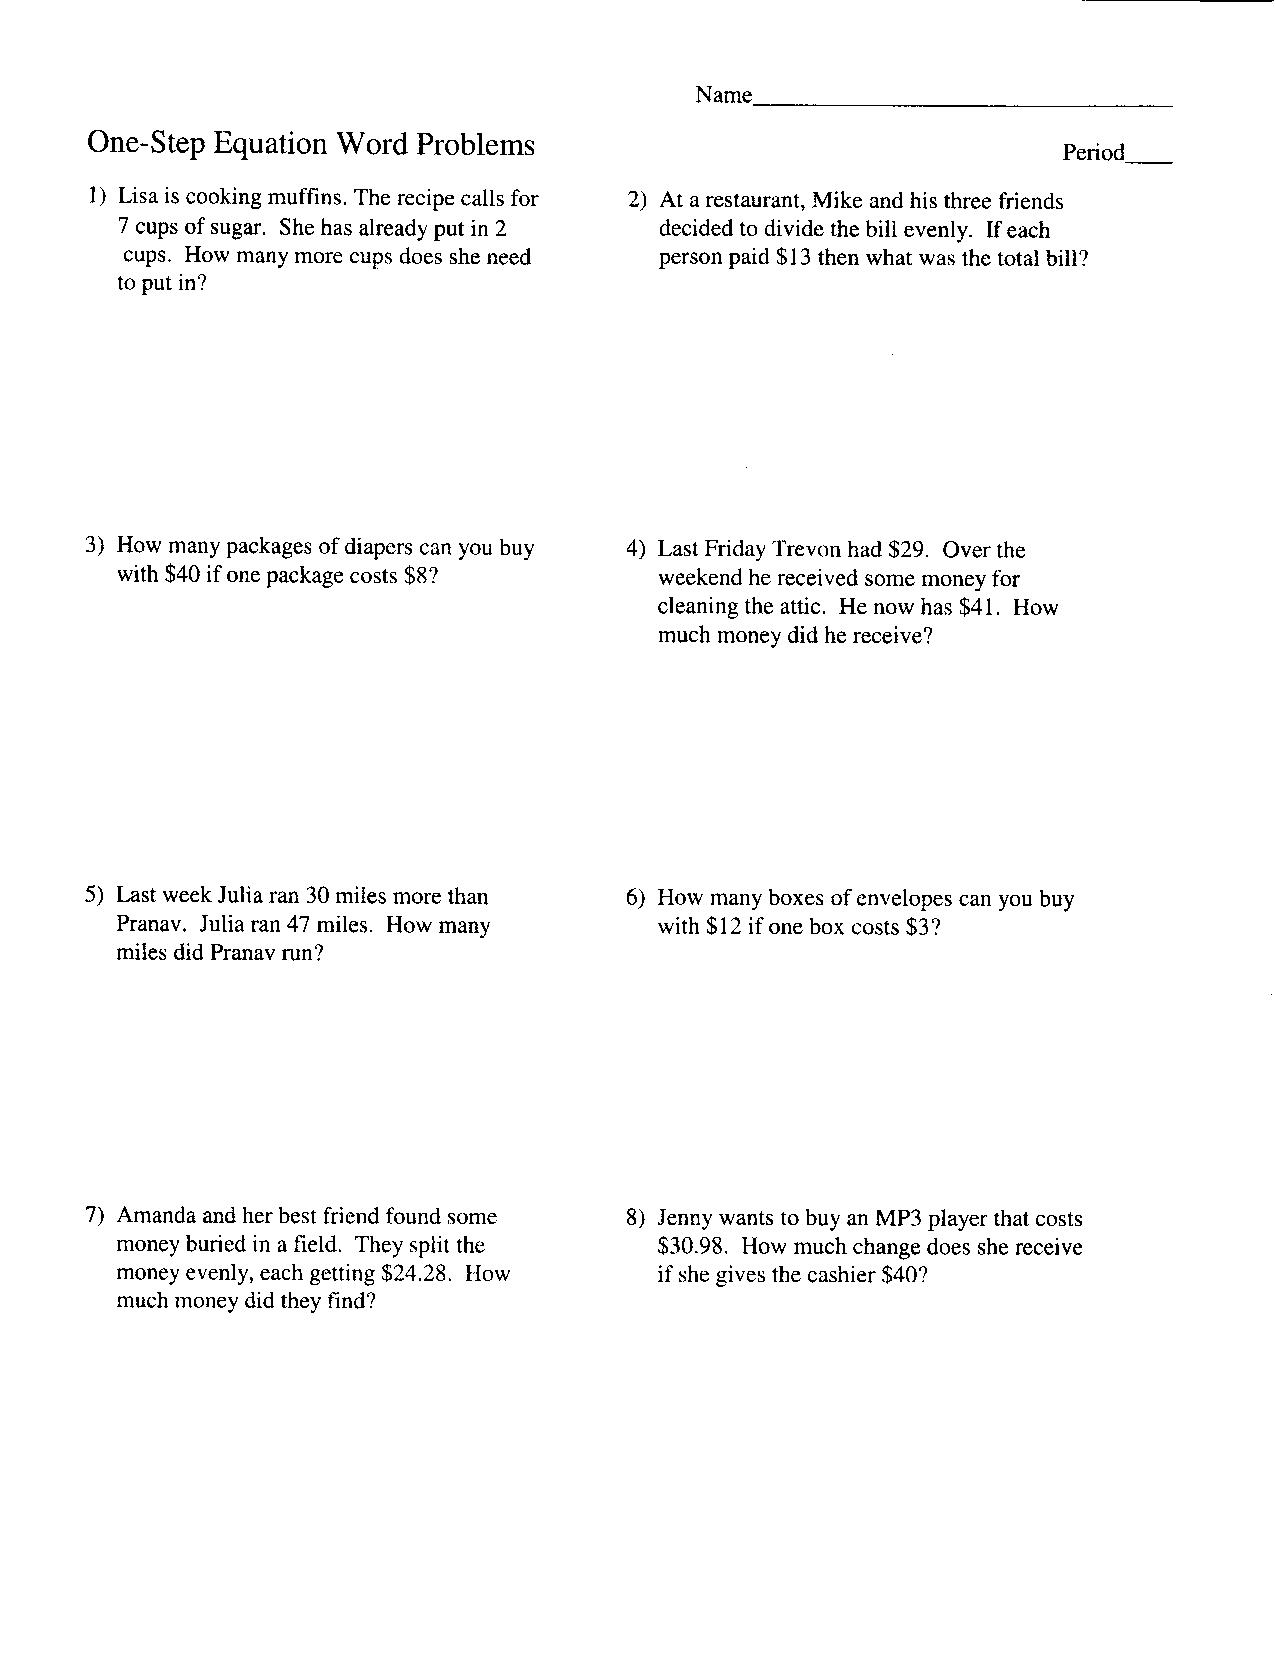 worksheet One Step Equation Word Problems photoaltan15 algebra word problem worksheets worksheets